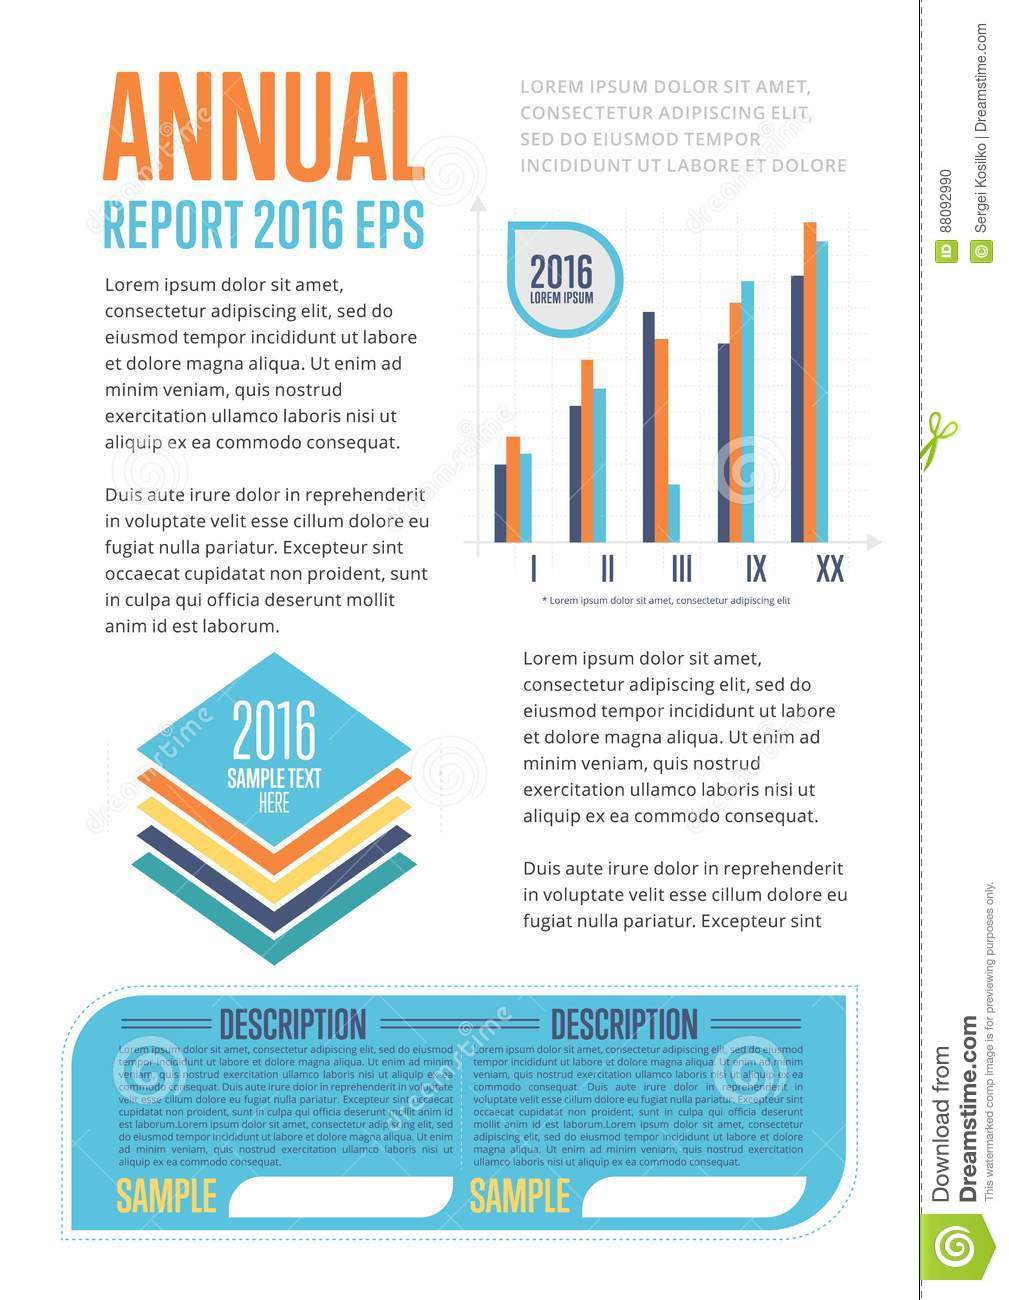 Annual report template with diagram stock vector illustration of download annual report template with diagram stock vector illustration of connection business 88092990 flashek Gallery